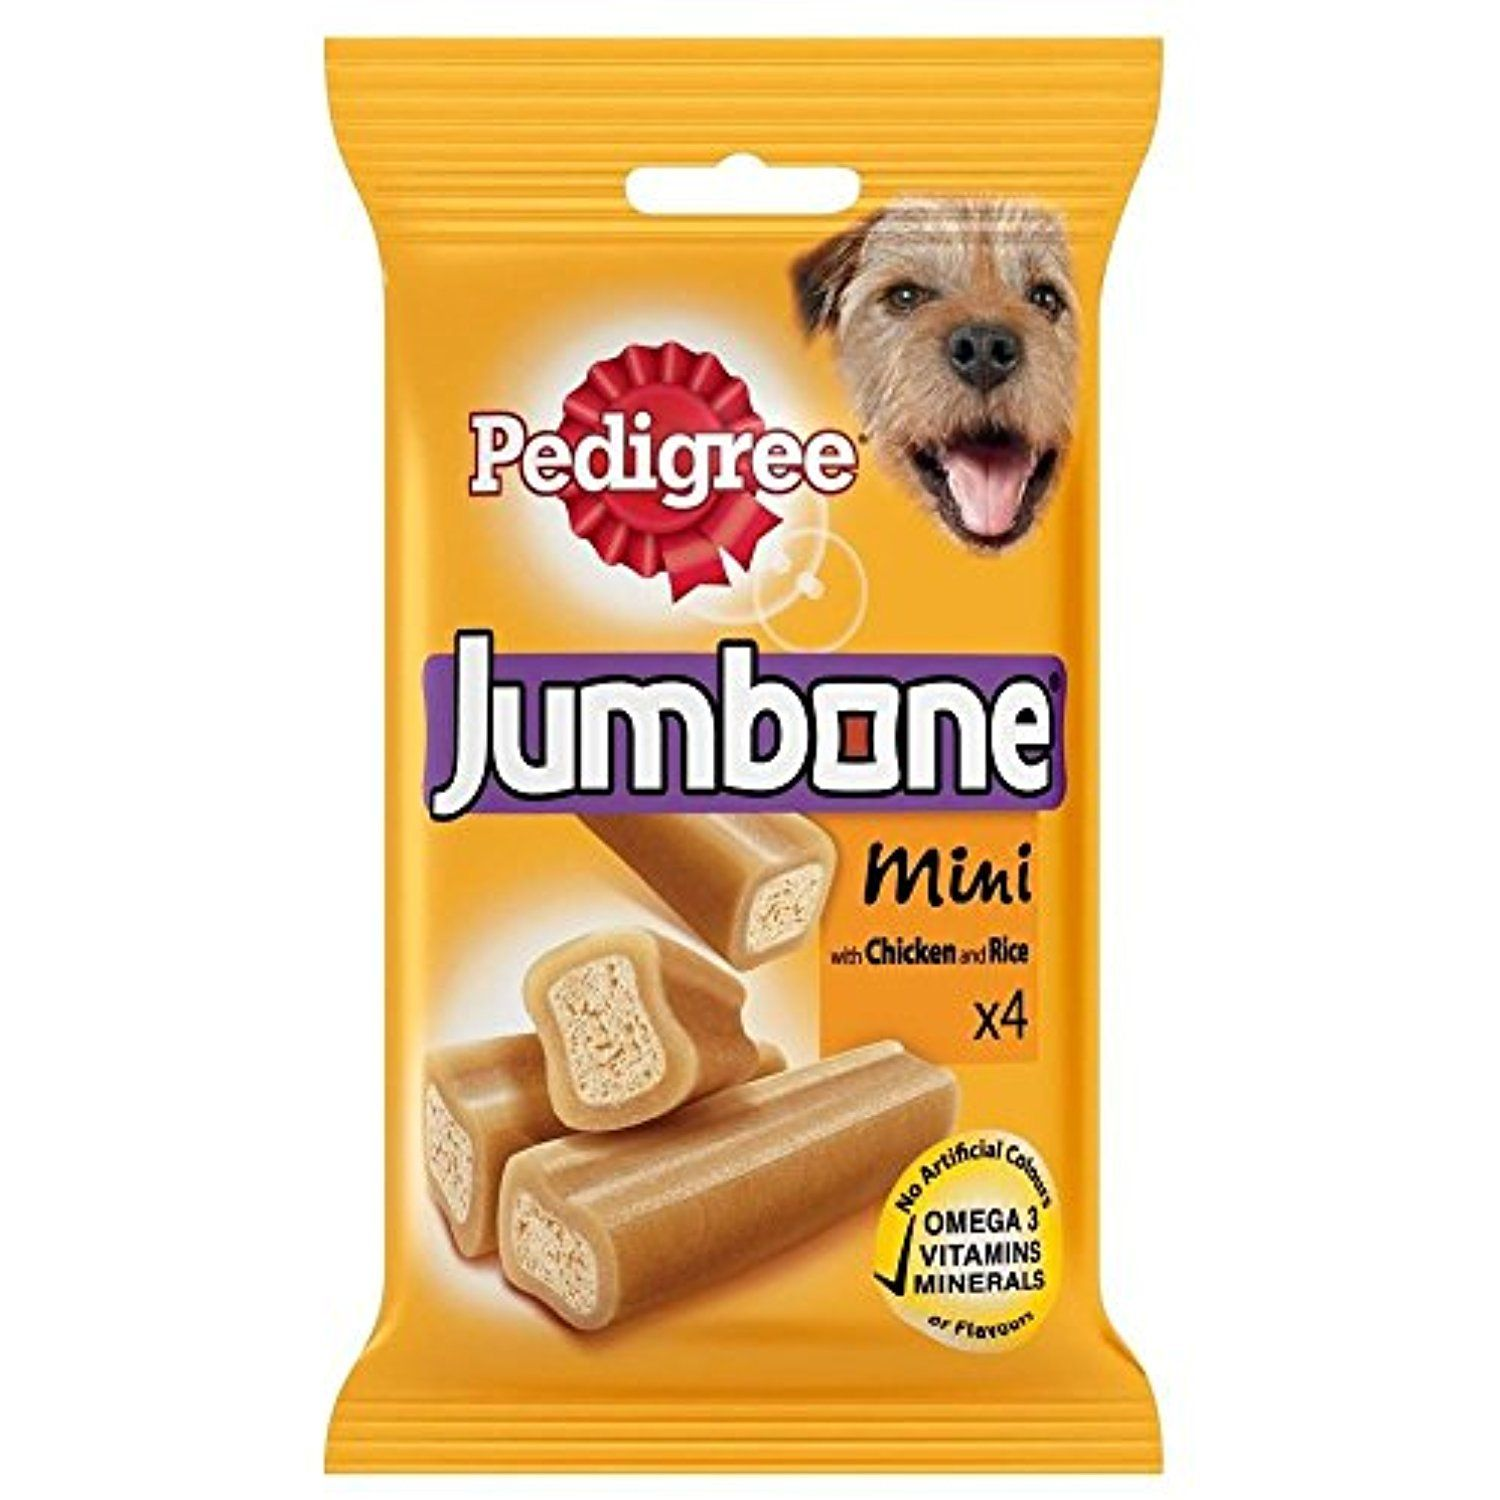 Pedigree Jumbone Mini Chicken Rice 4 Per Pack 180g To